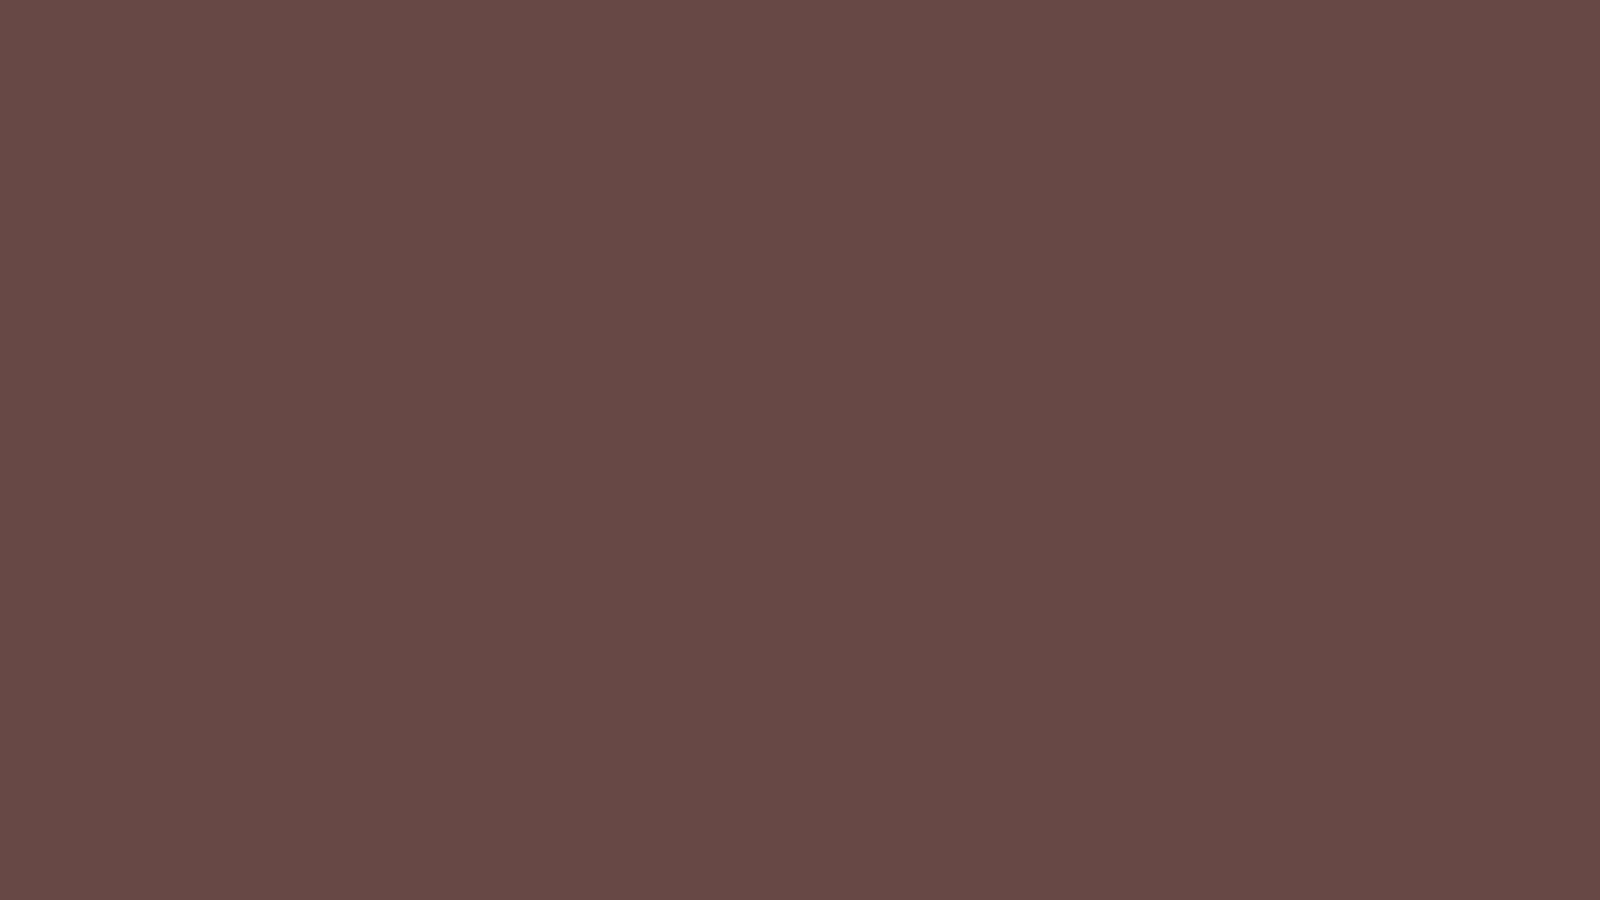 1600x900 Rose Ebony Solid Color Background